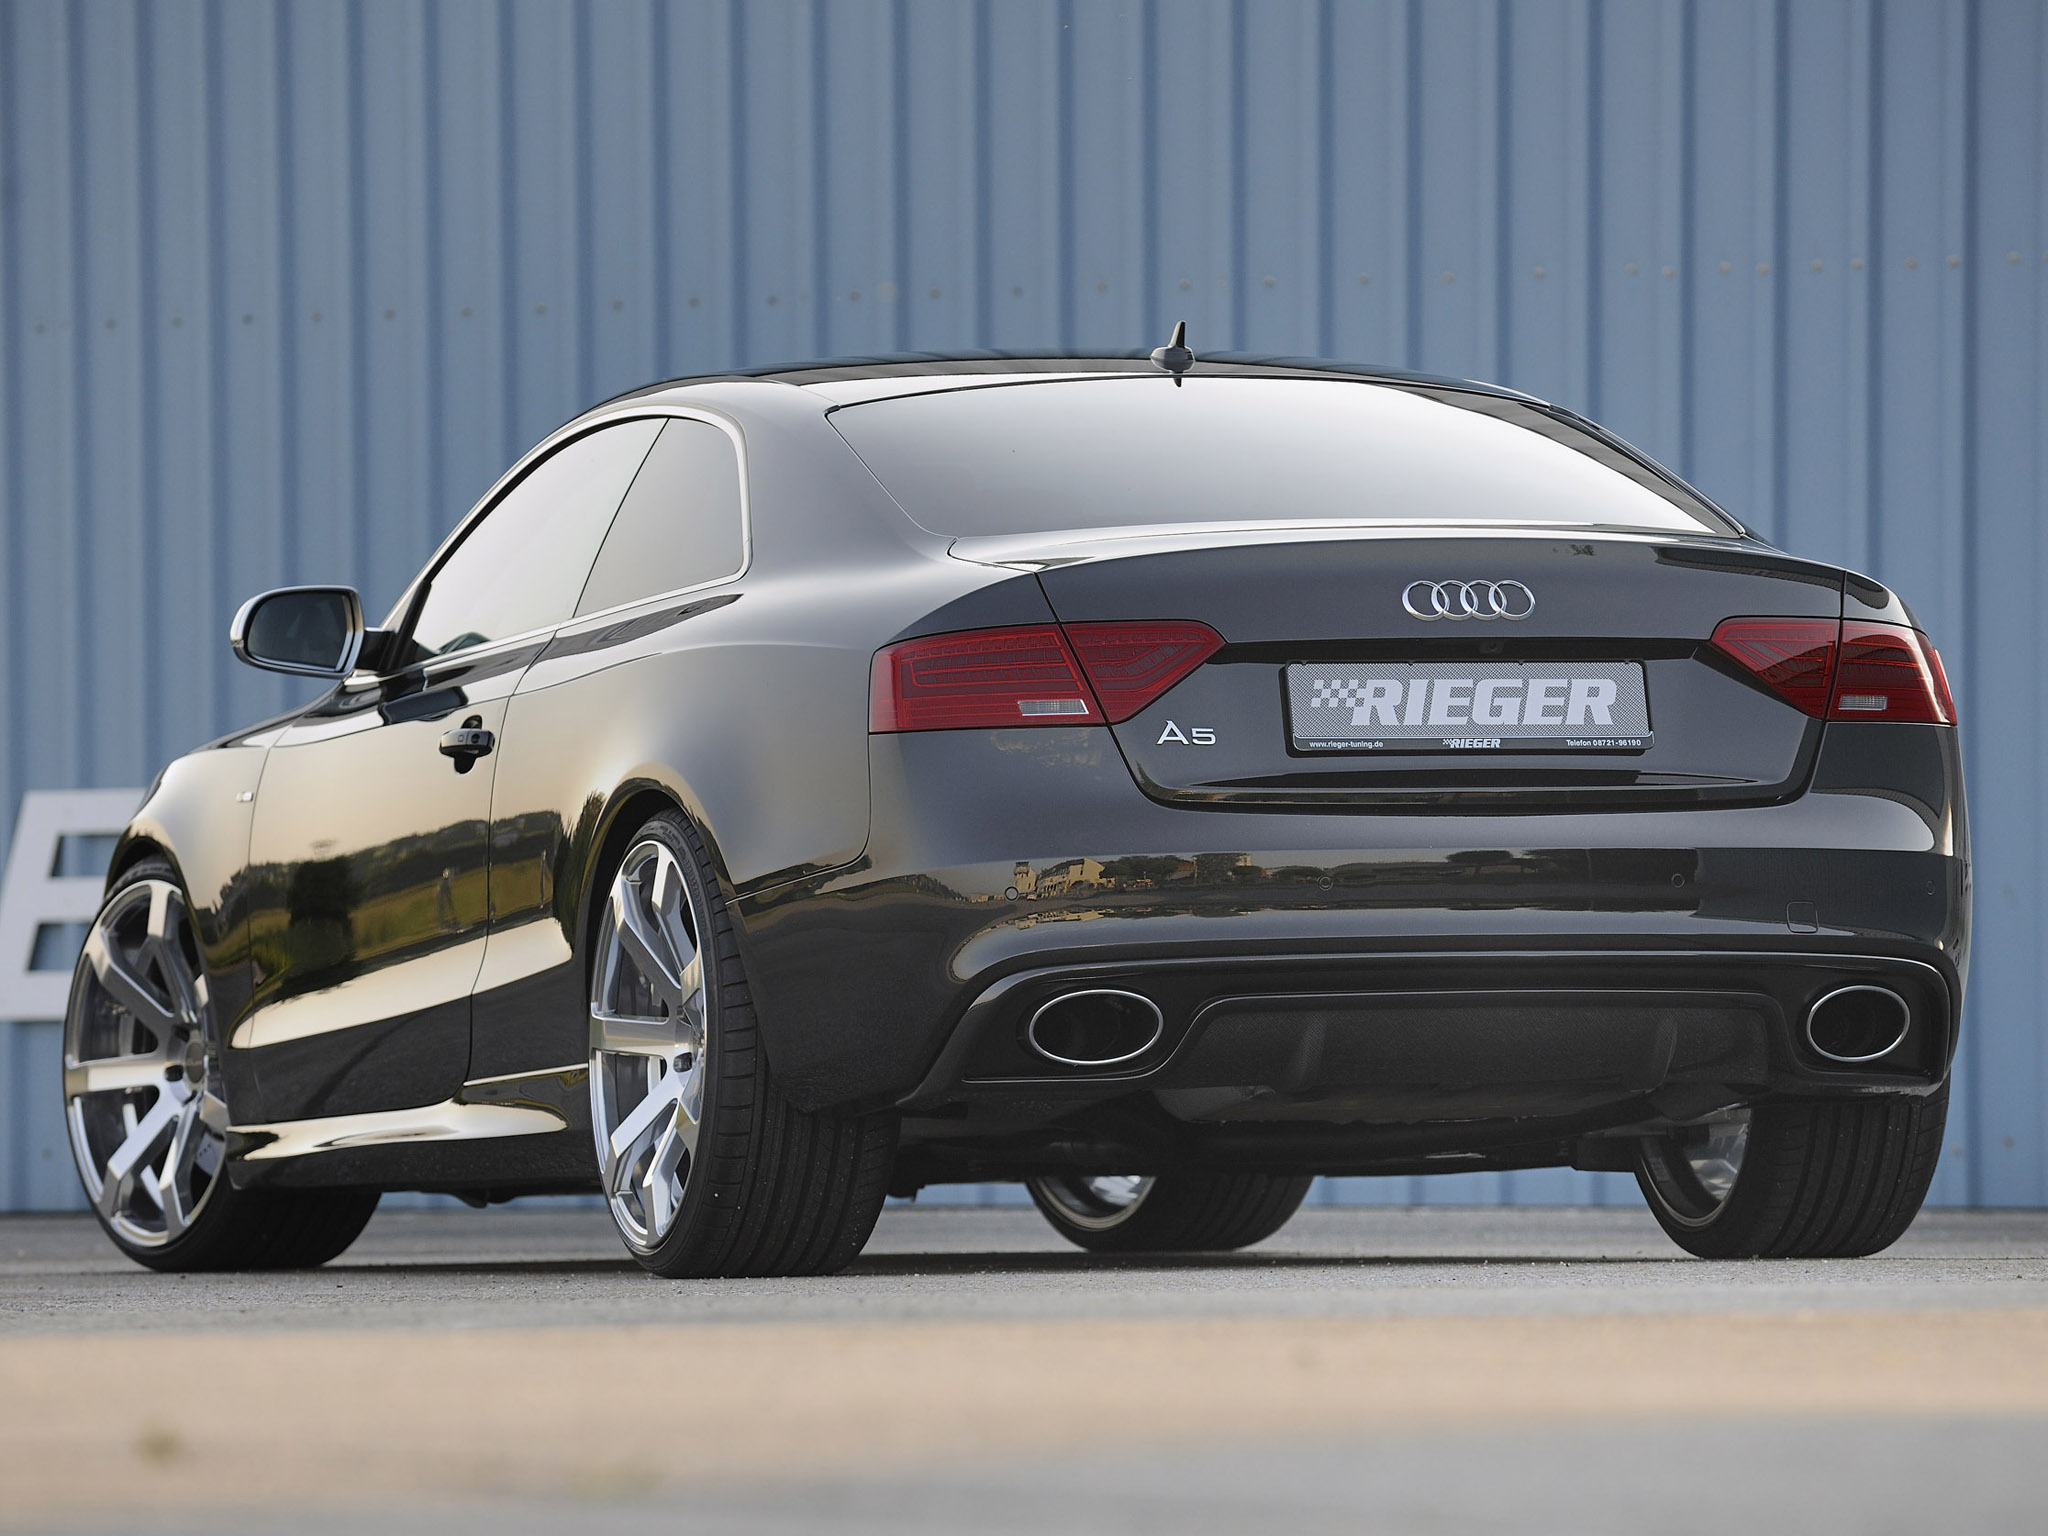 Audi Images Audi A5 By Rieger Hd Wallpaper And Background